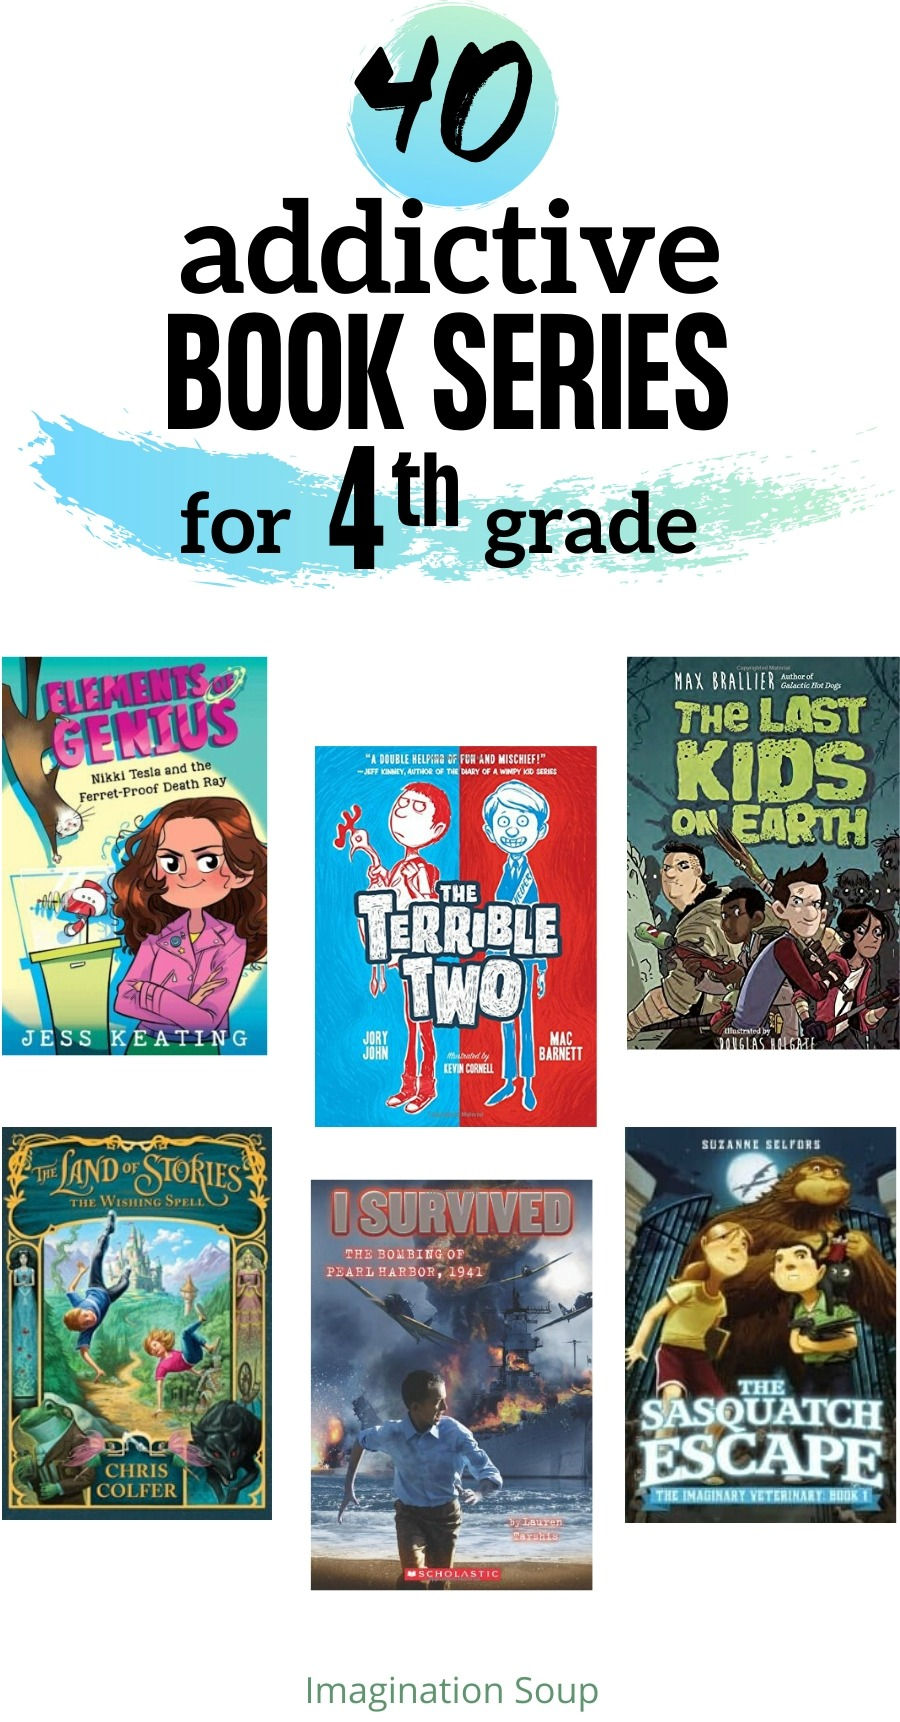 40 Good Book Series For 4th Graders That Will Keep Them Reading Kids Book Series Book Series For Boys 4th Grade Books